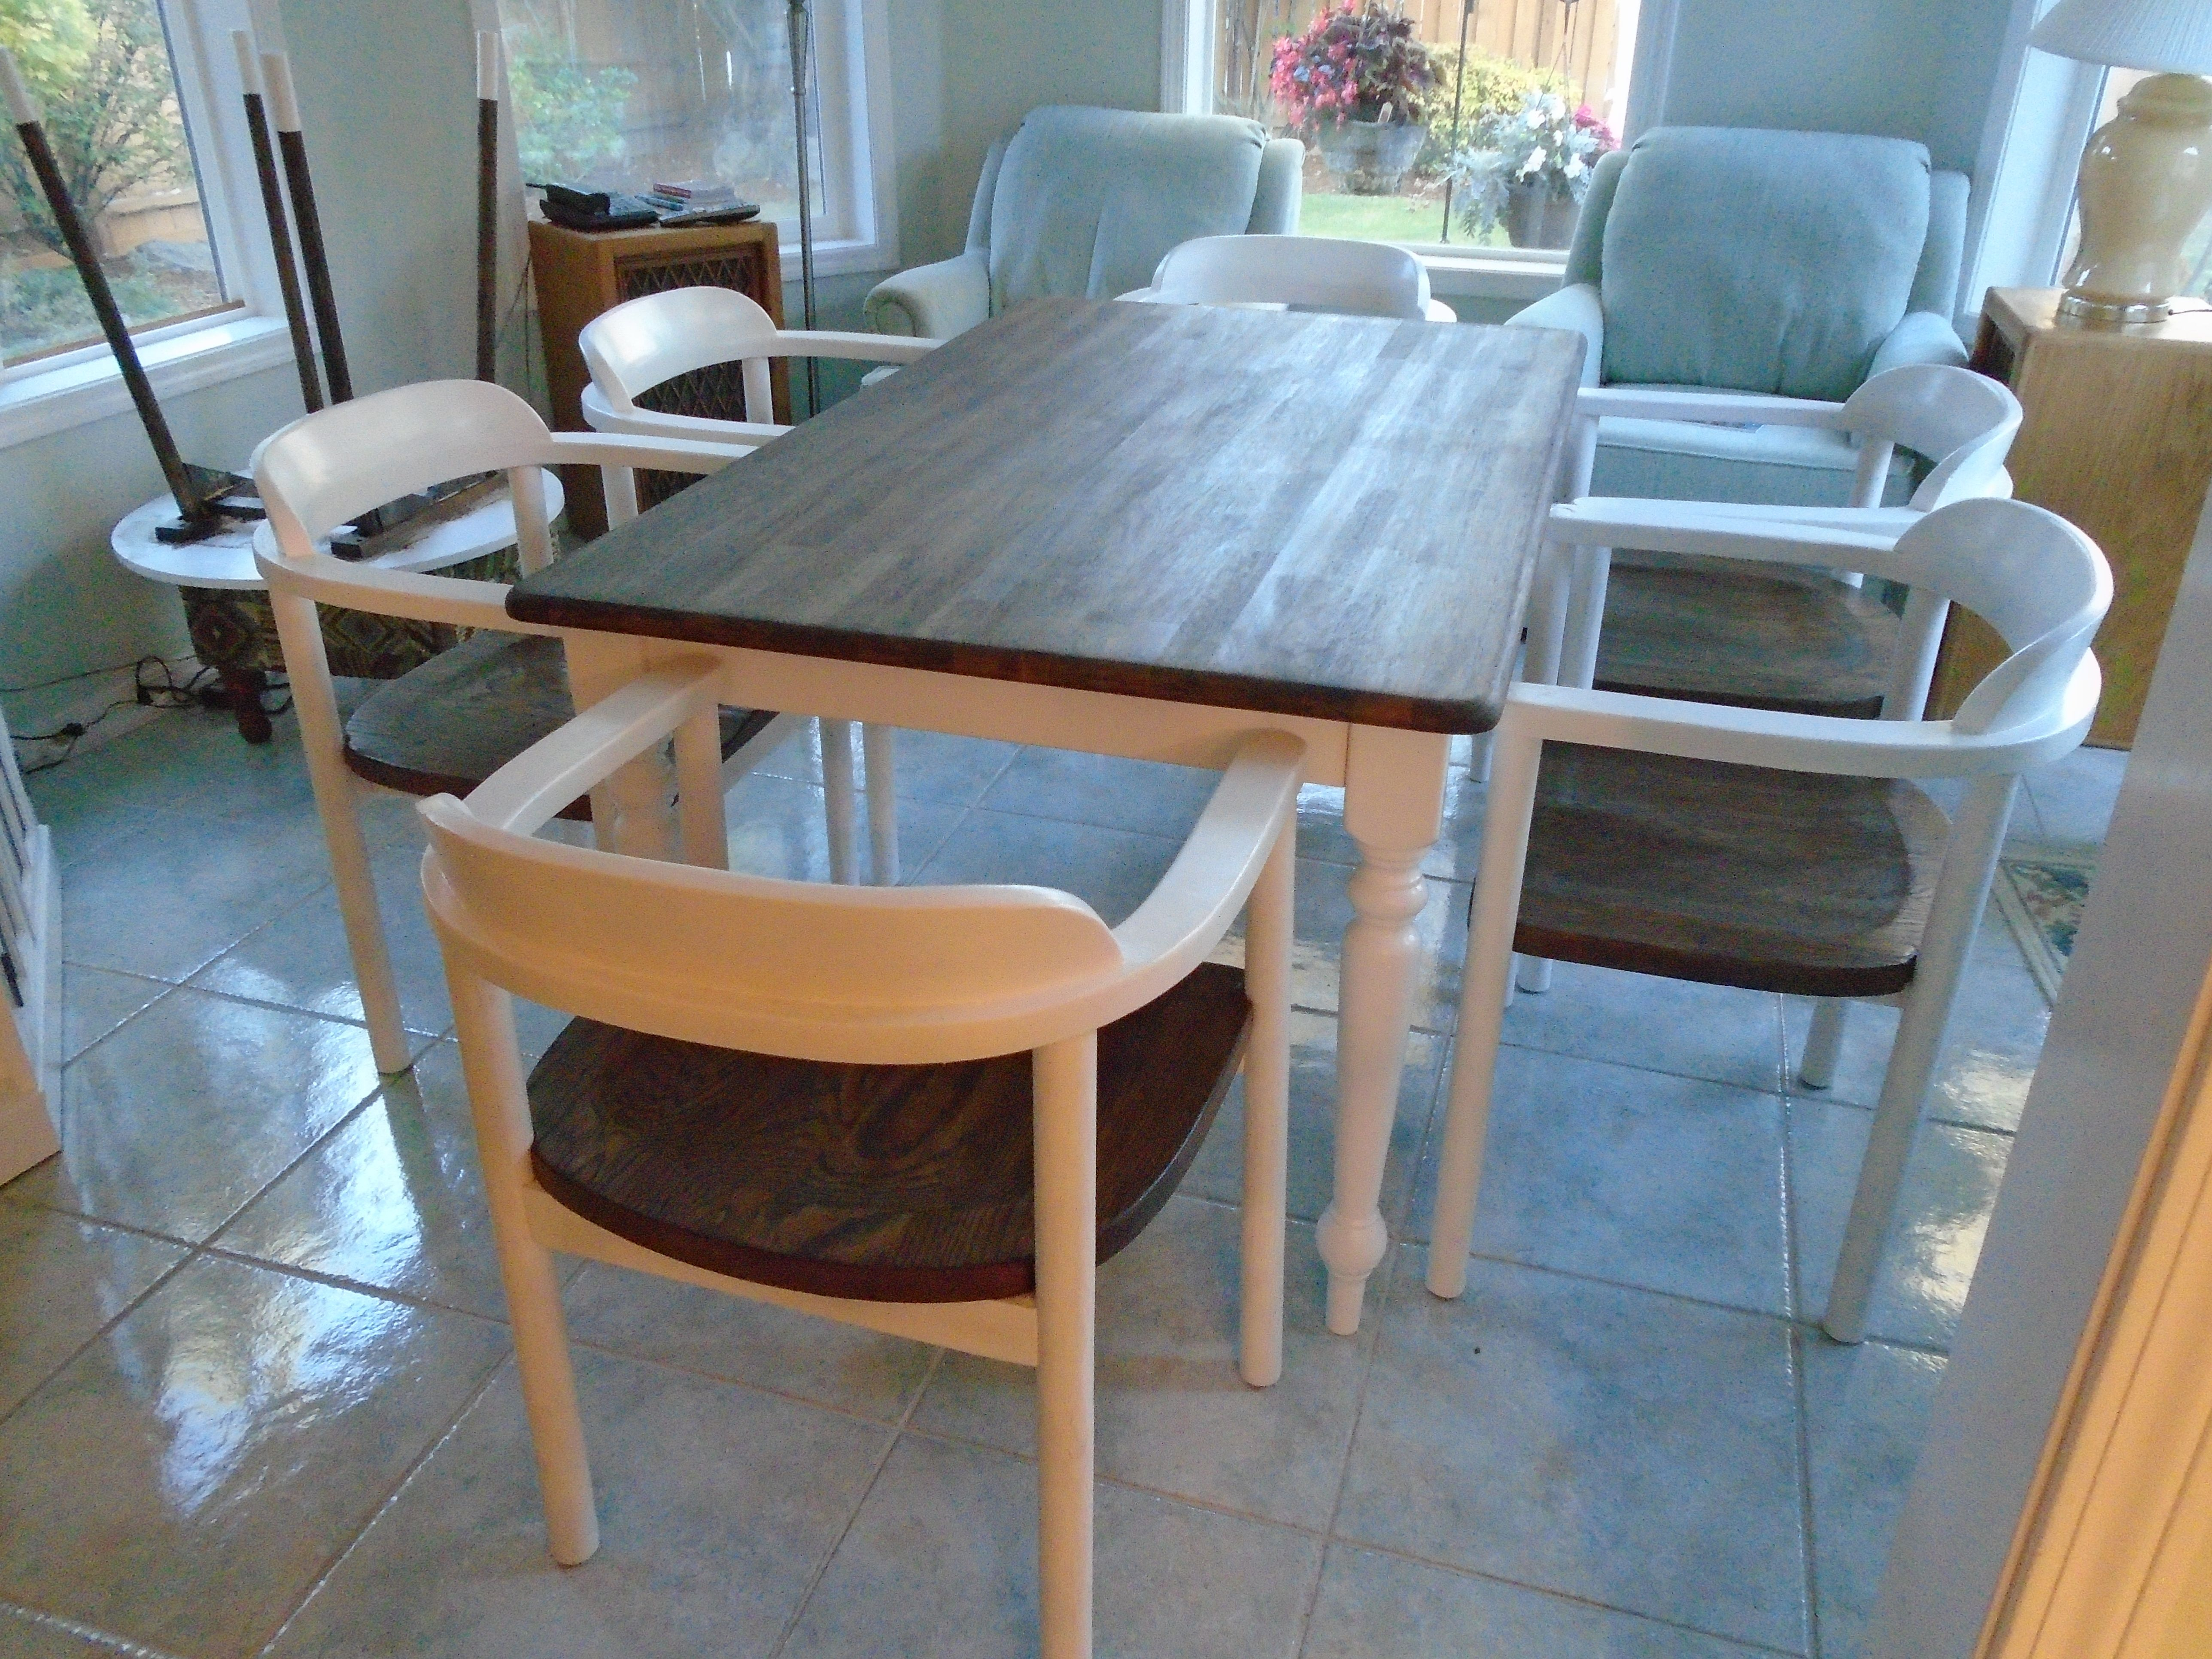 Rustic Farmhouse Table Brown Stained Top White Painted Legs 6 Stunning Captain Chairs For Dining Room Decorating Design